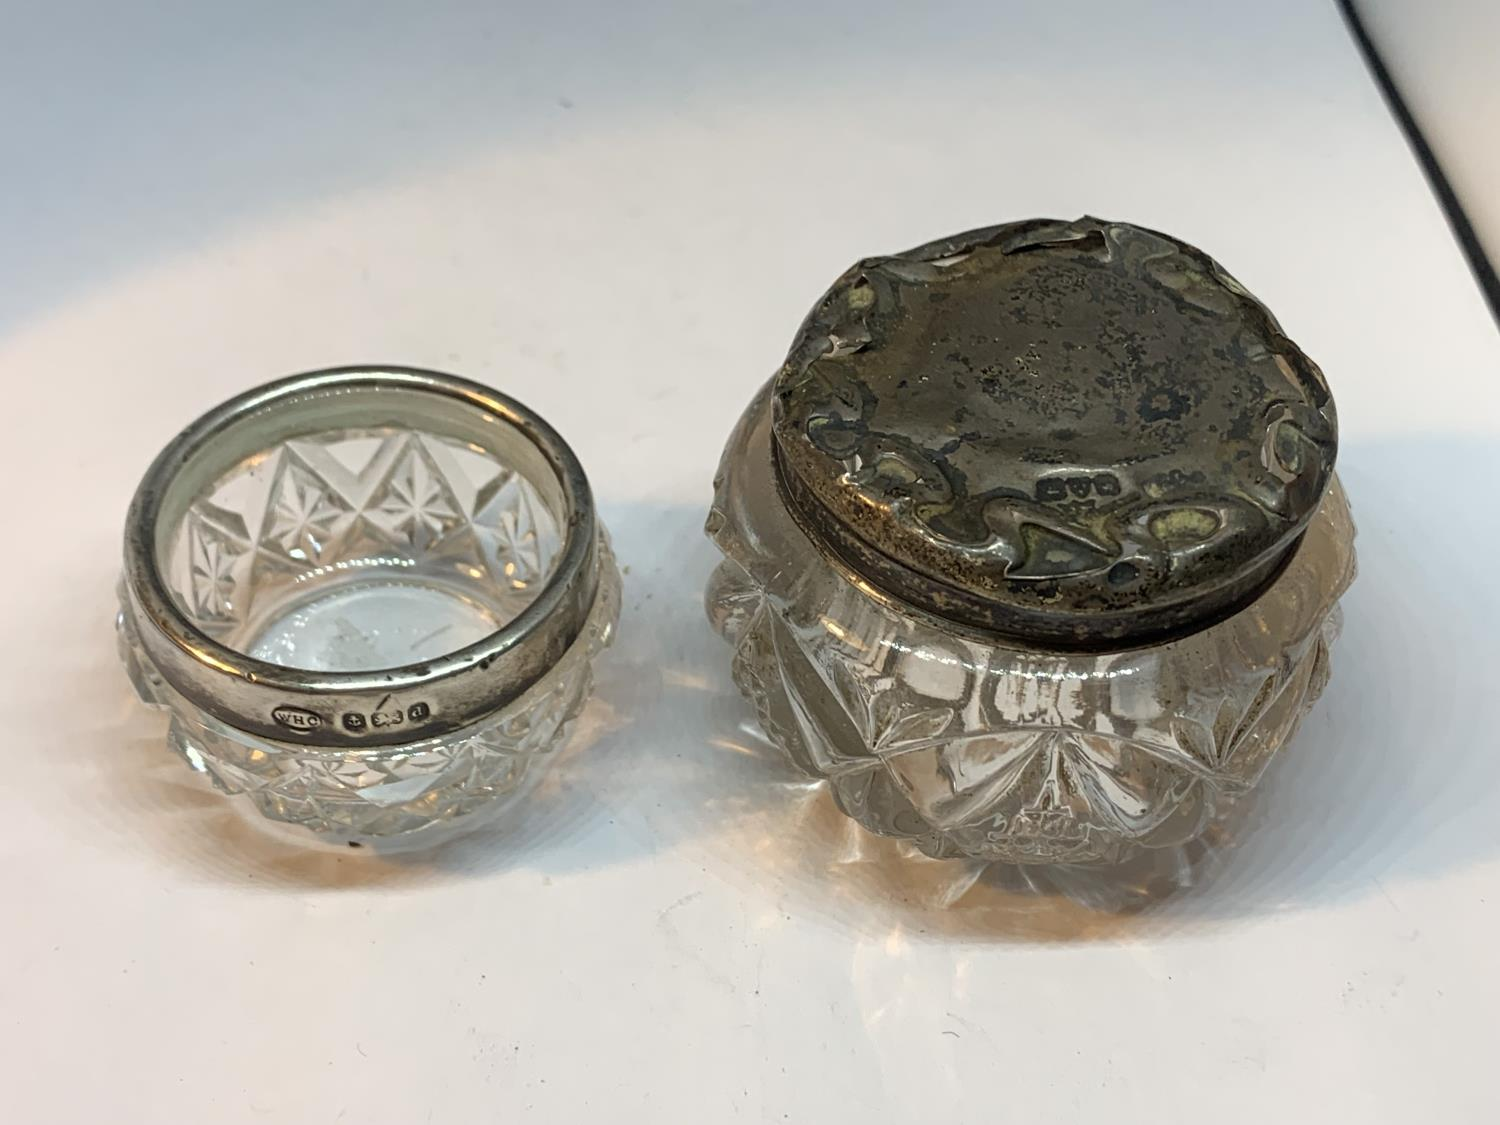 TWO GLASS POTS ONE WITH A HALLMARKED BIRMINGHAM SILVER RIM AND ONE WITH AN INDISTINCT HALLMARKED